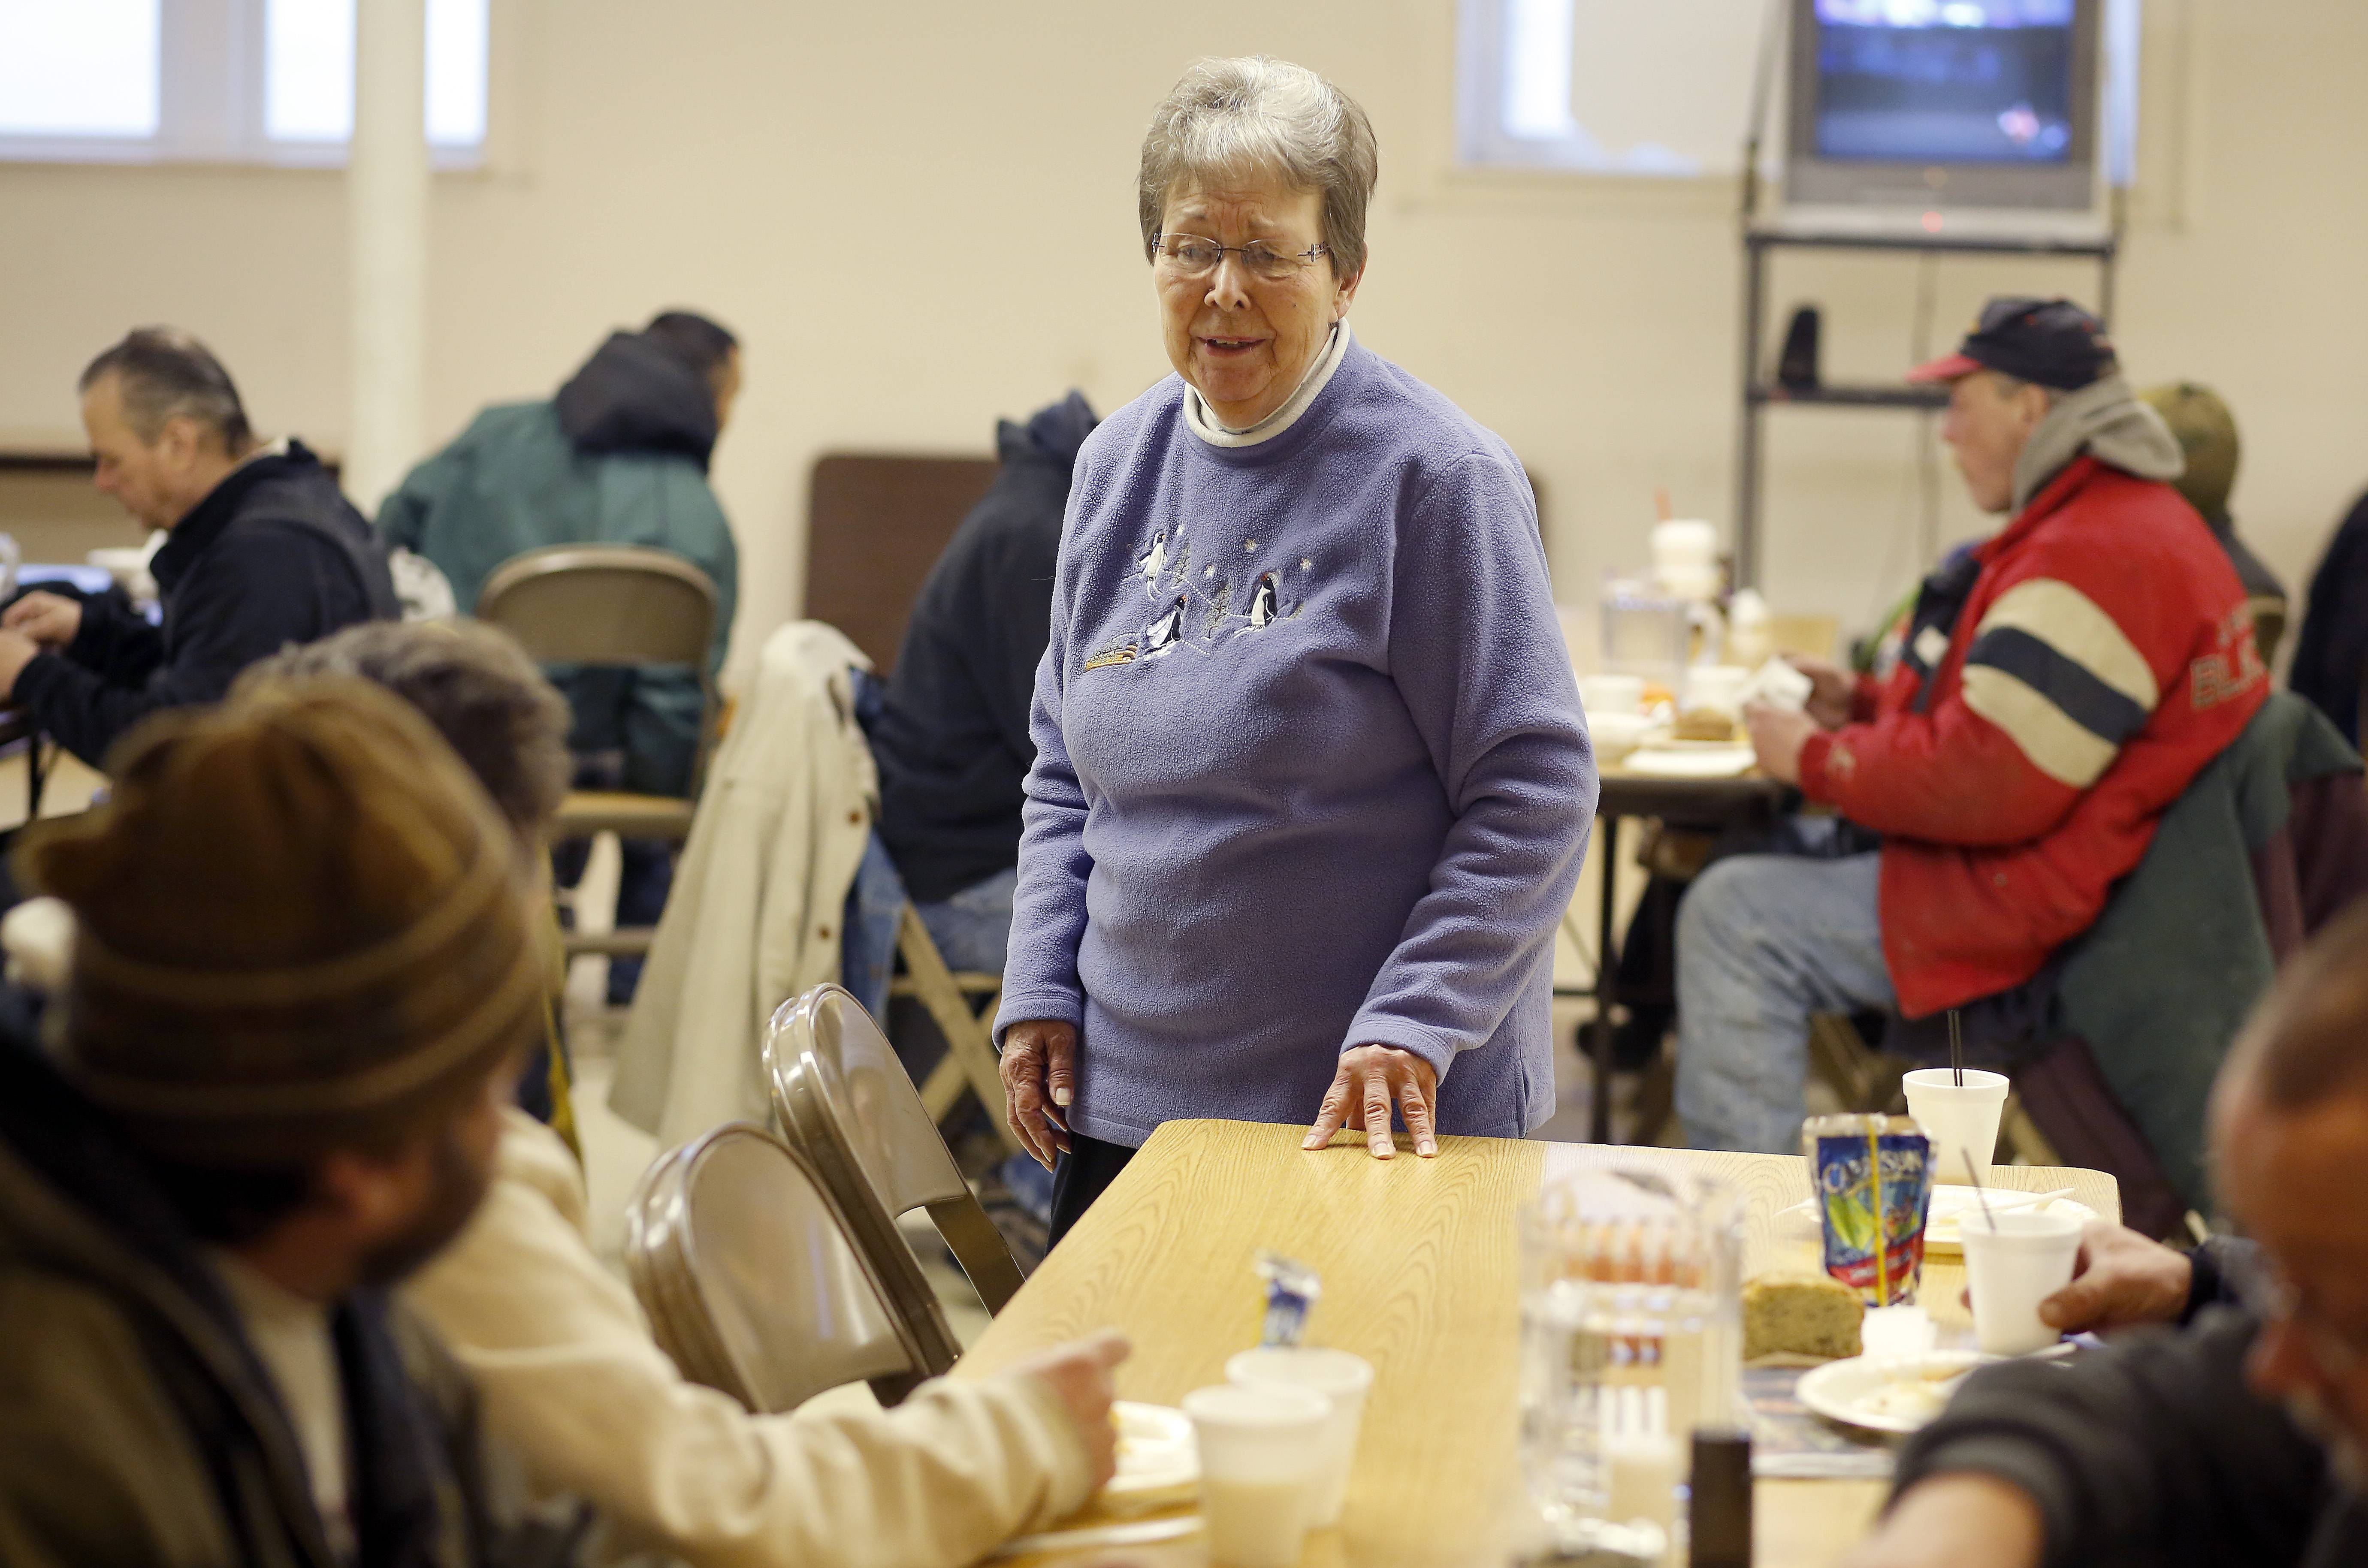 Nancy Merlak checks with some of the guests during a recent breakfast. Volunteers from all over serve a hot breakfast to the homeless from 6:30 to 8 a.m. Monday through Friday at Vineyard Church, Elgin.